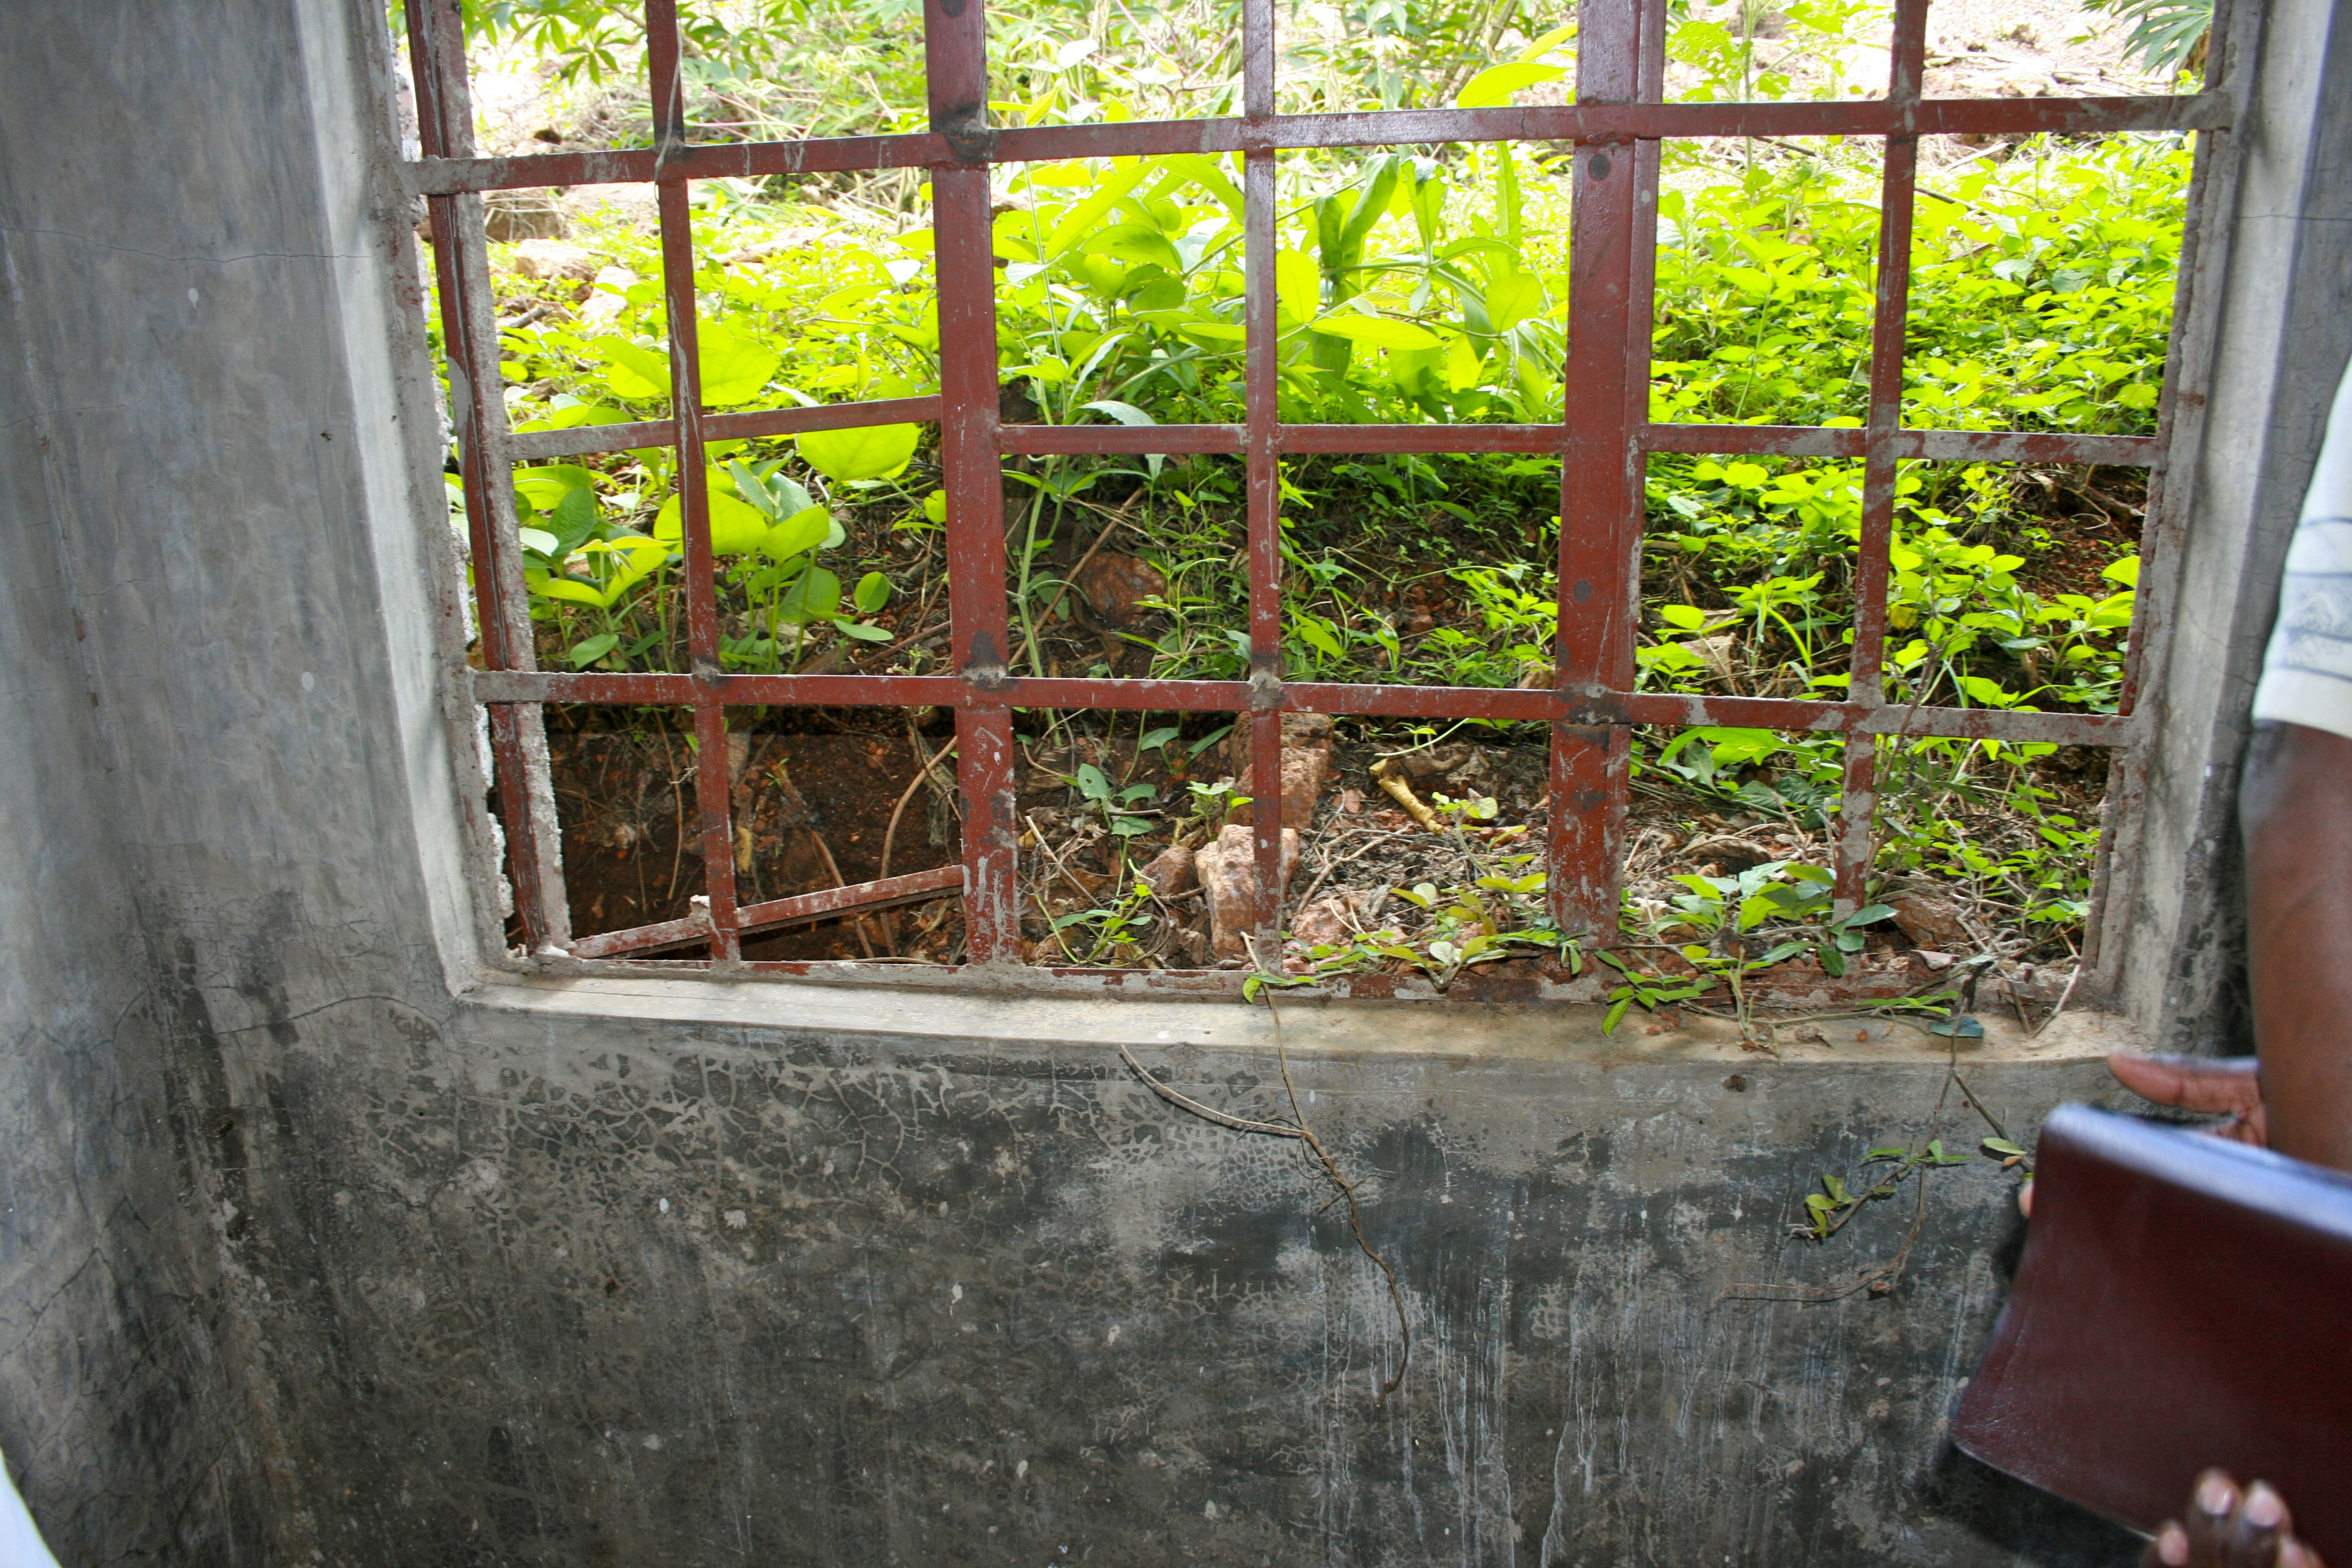 Interior view of encroaching hill